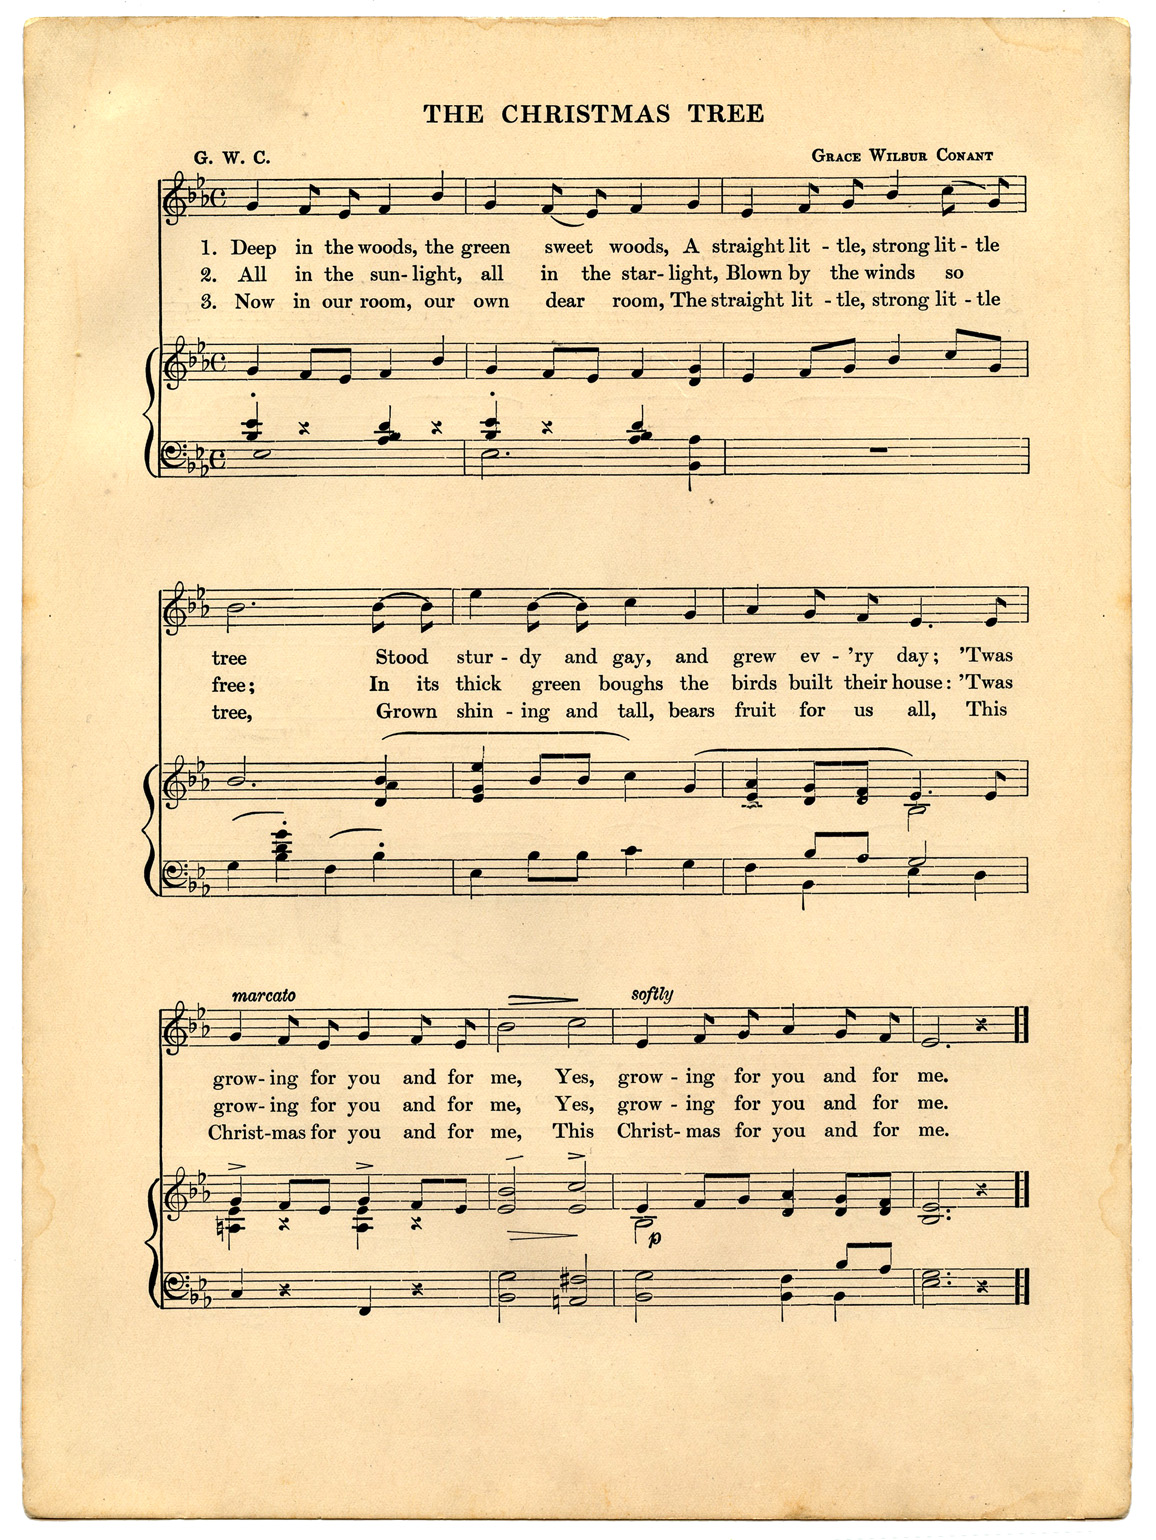 image relating to Vintage Sheet Music Printable named Typical Xmas Sheet Tunes Printable - The Graphics Fairy